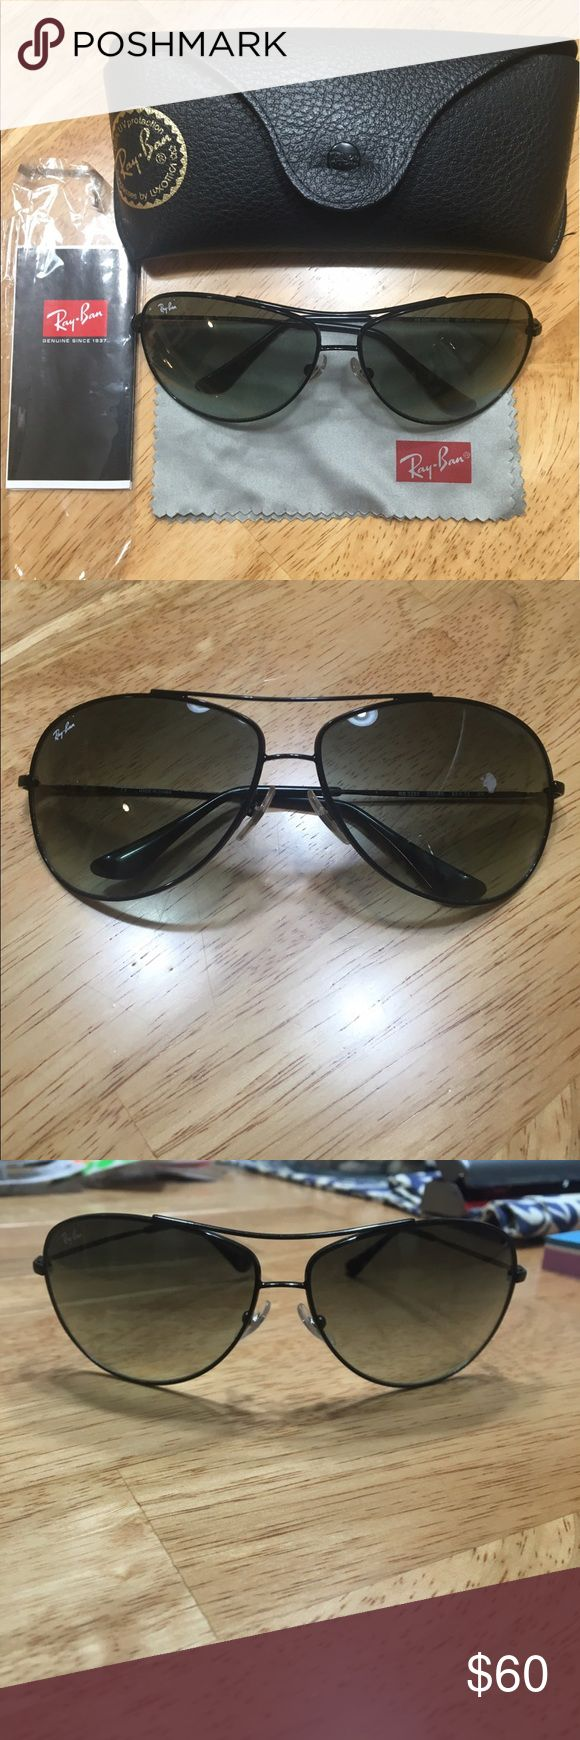 Authentic Ray-Ban Black Aviator Sunglasses Authentic black metal framed Ray-Ban aviator sunglasses. Wore twice. Comes with original case (it is a little broken at the snap, but still closed shut), pamphlet, and Ray Ban cloth. Ray-Ban Accessories Sunglasses